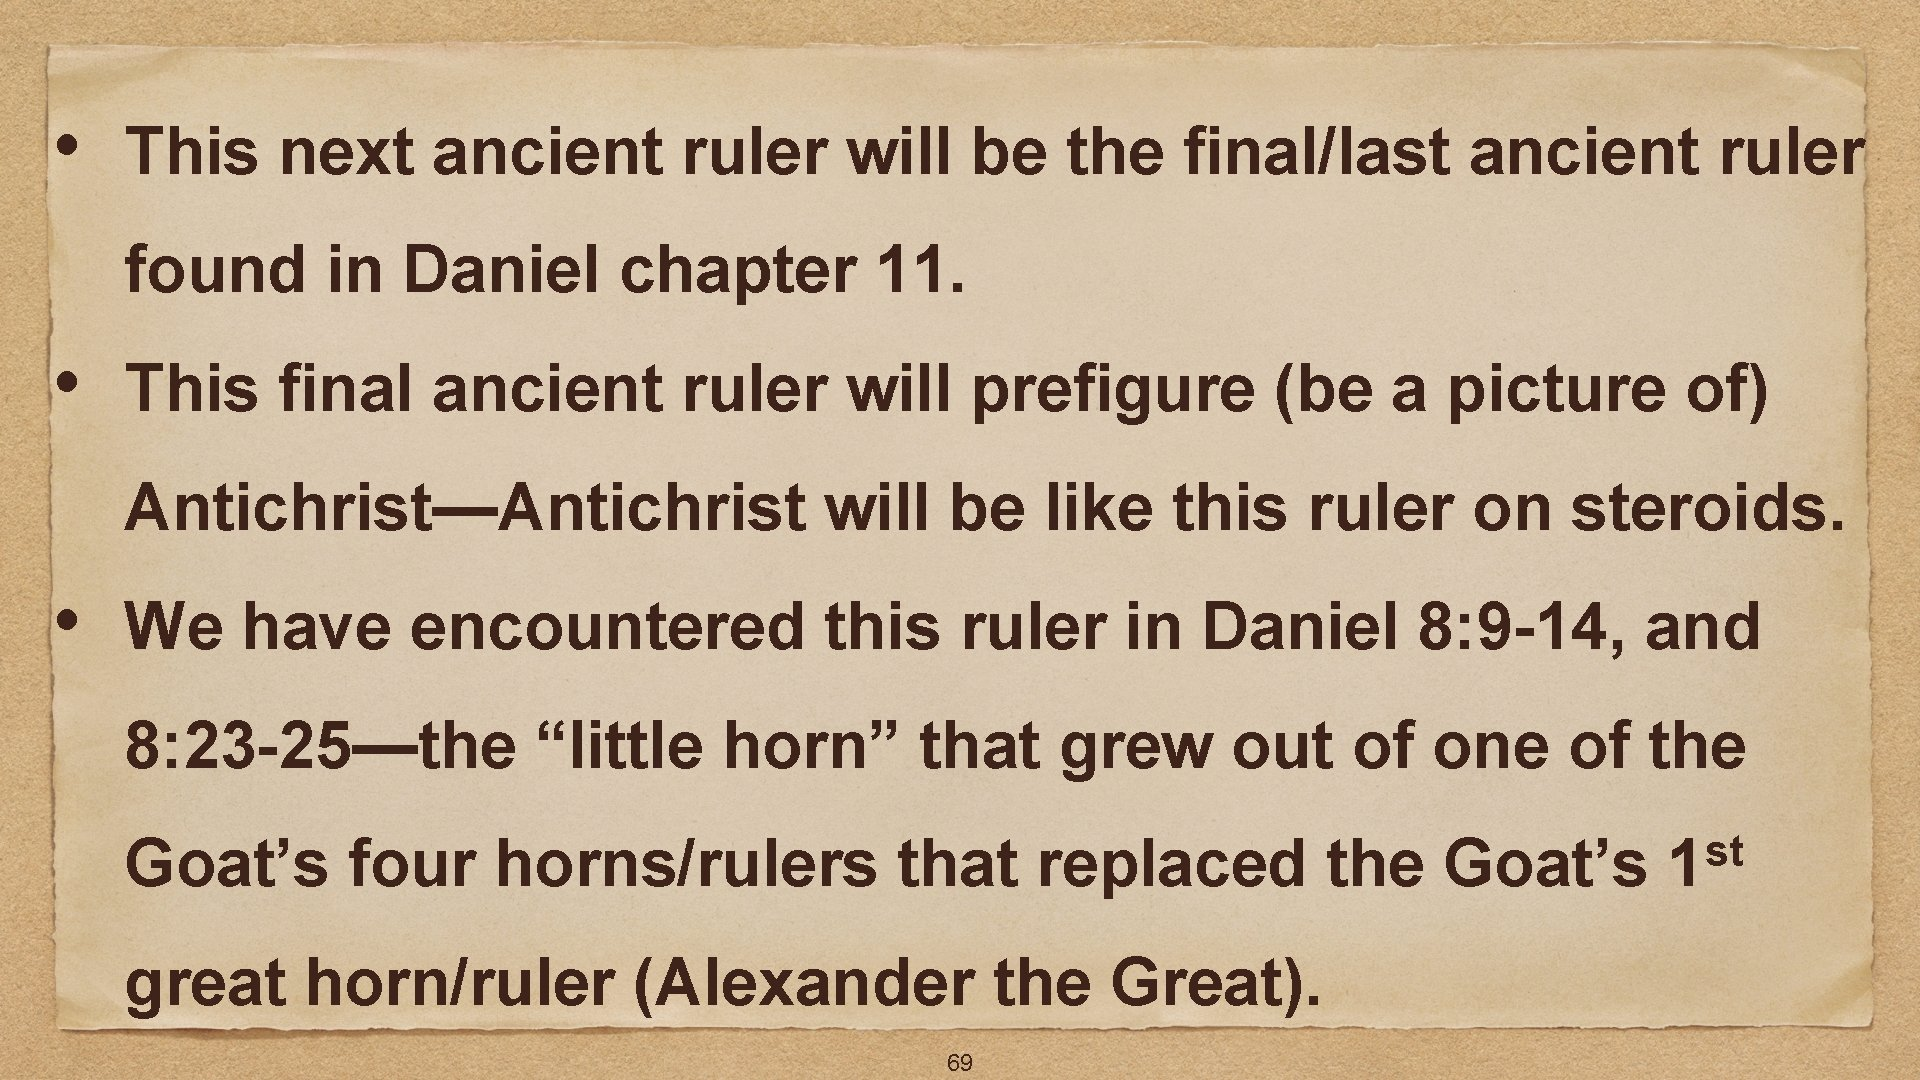 • This next ancient ruler will be the final/last ancient ruler found in